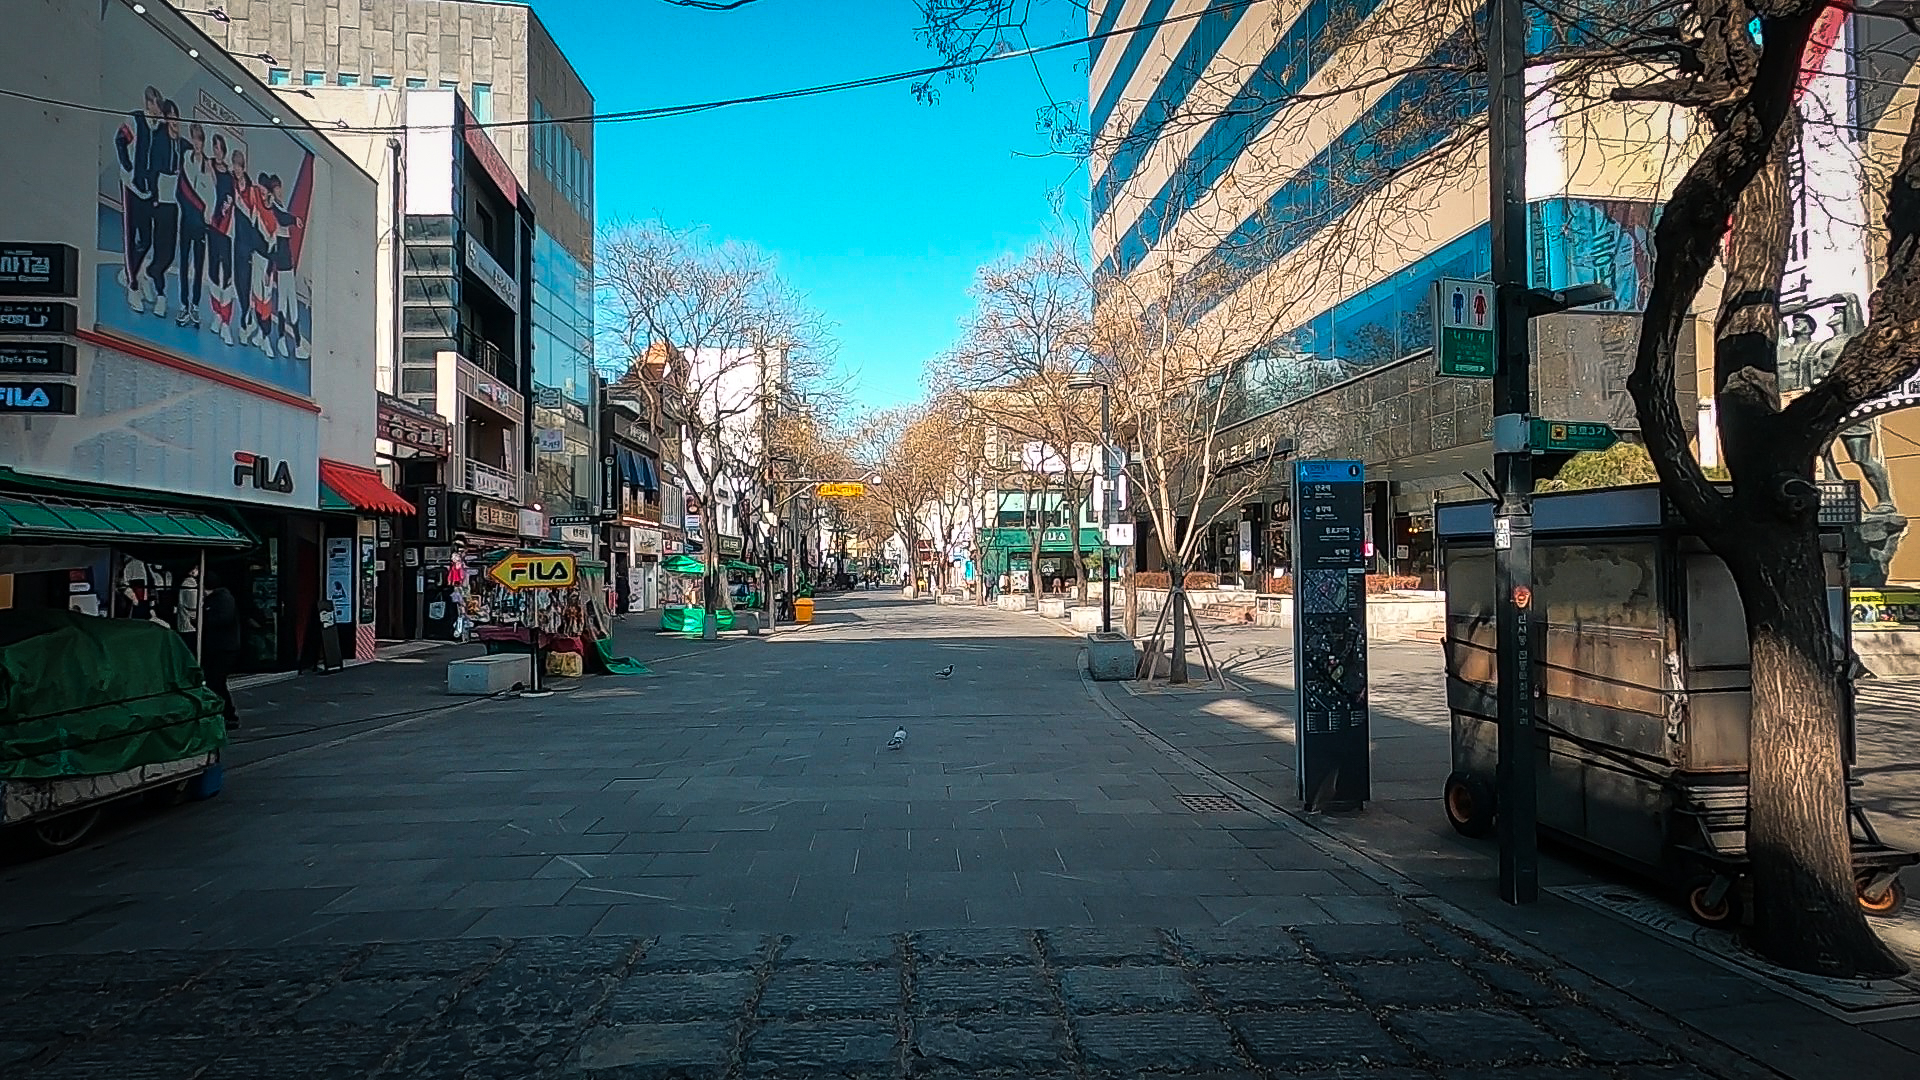 Insadong, a hot spot for locals and tourists alike, is usually full of people and life. However, these days the streets are empty as people are opting to stay away from large crowds.